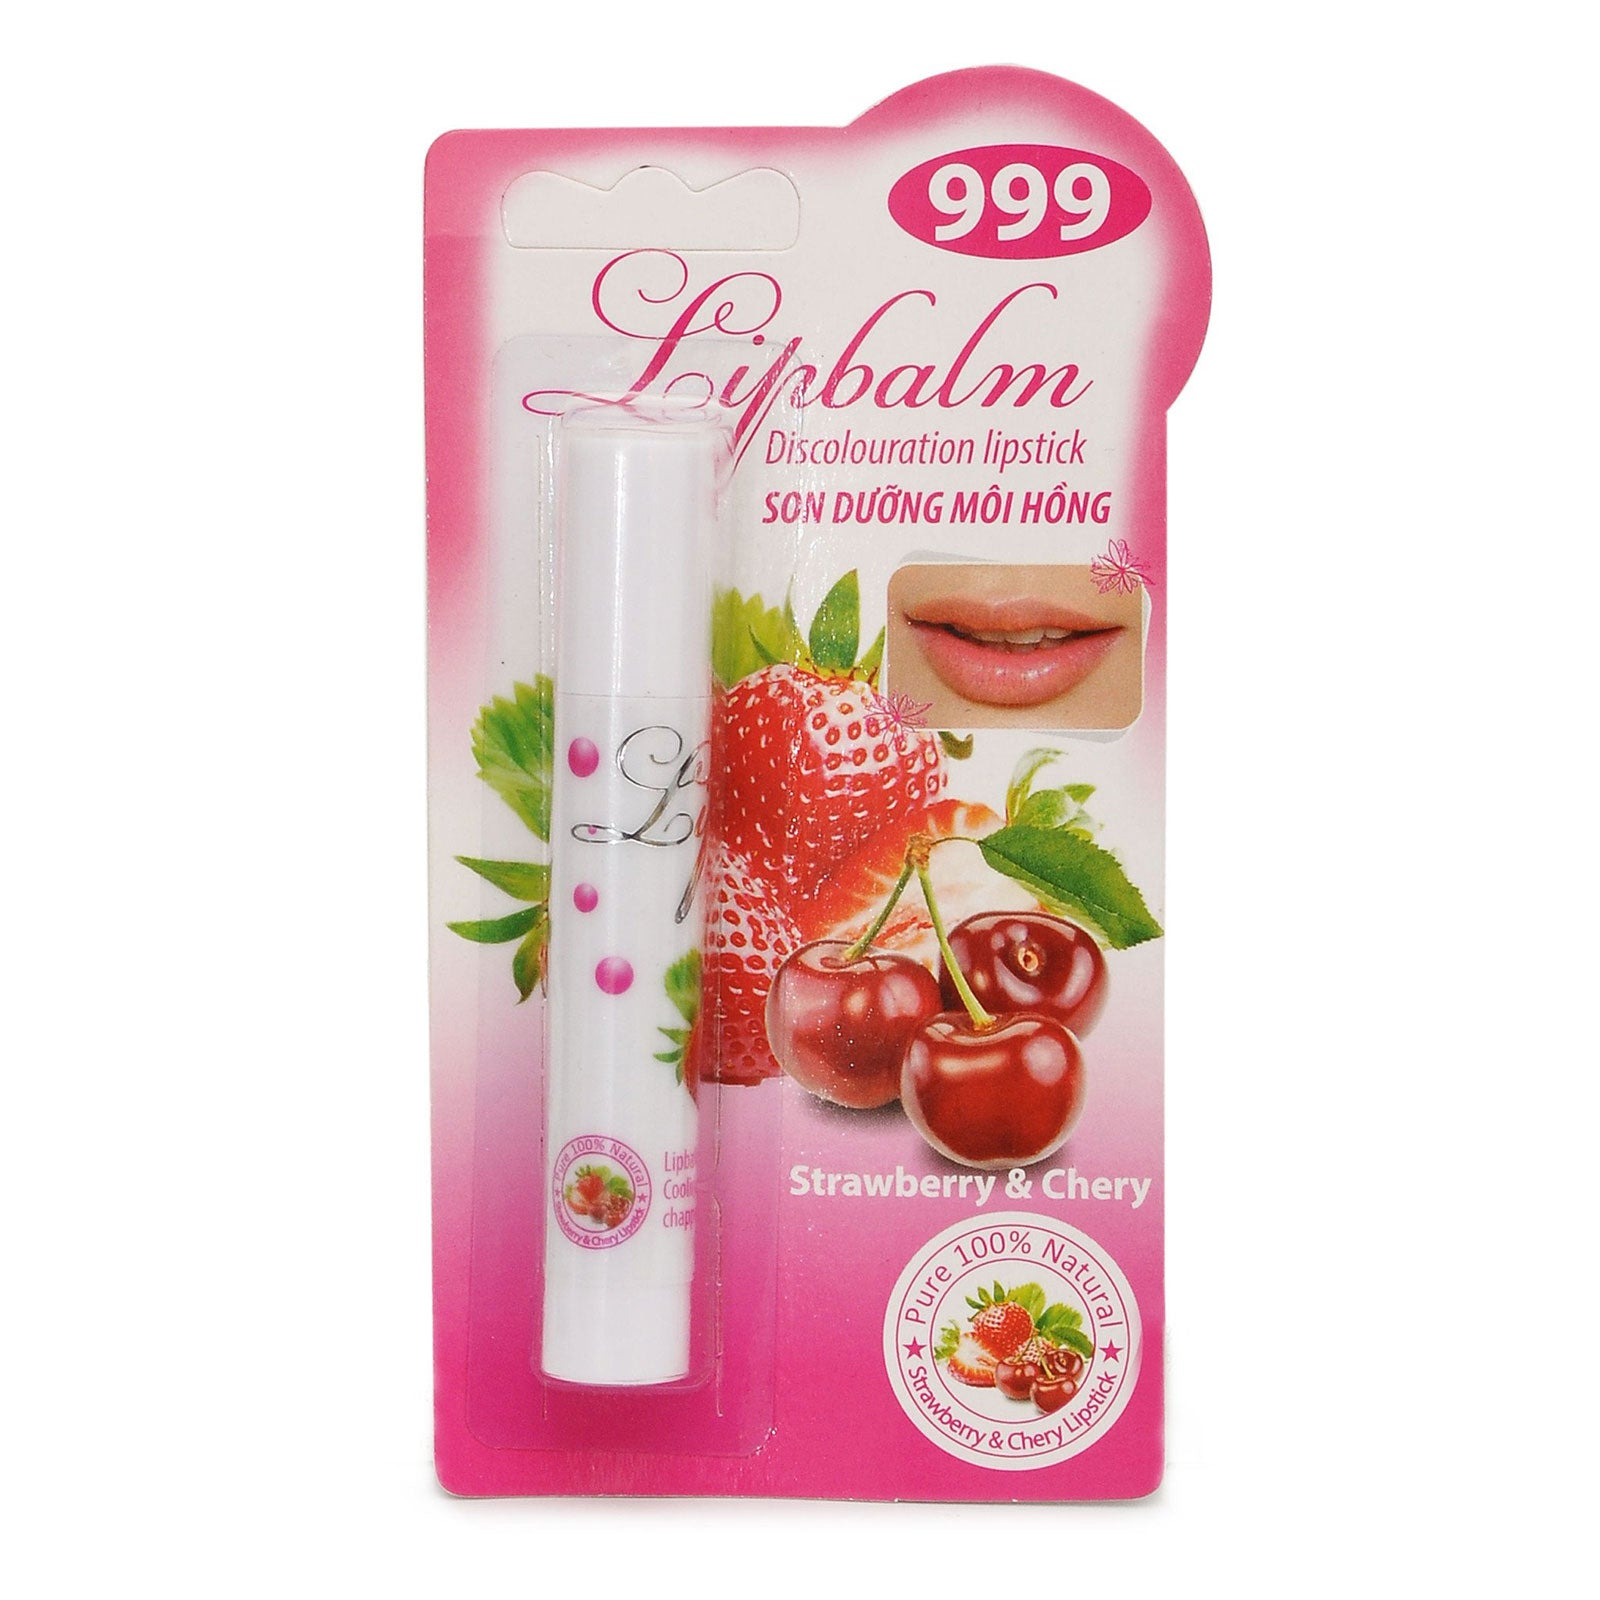 999 Lipbalm - Capstick-Pure 100% Natural Coconut Oil Strwaberry Cherry